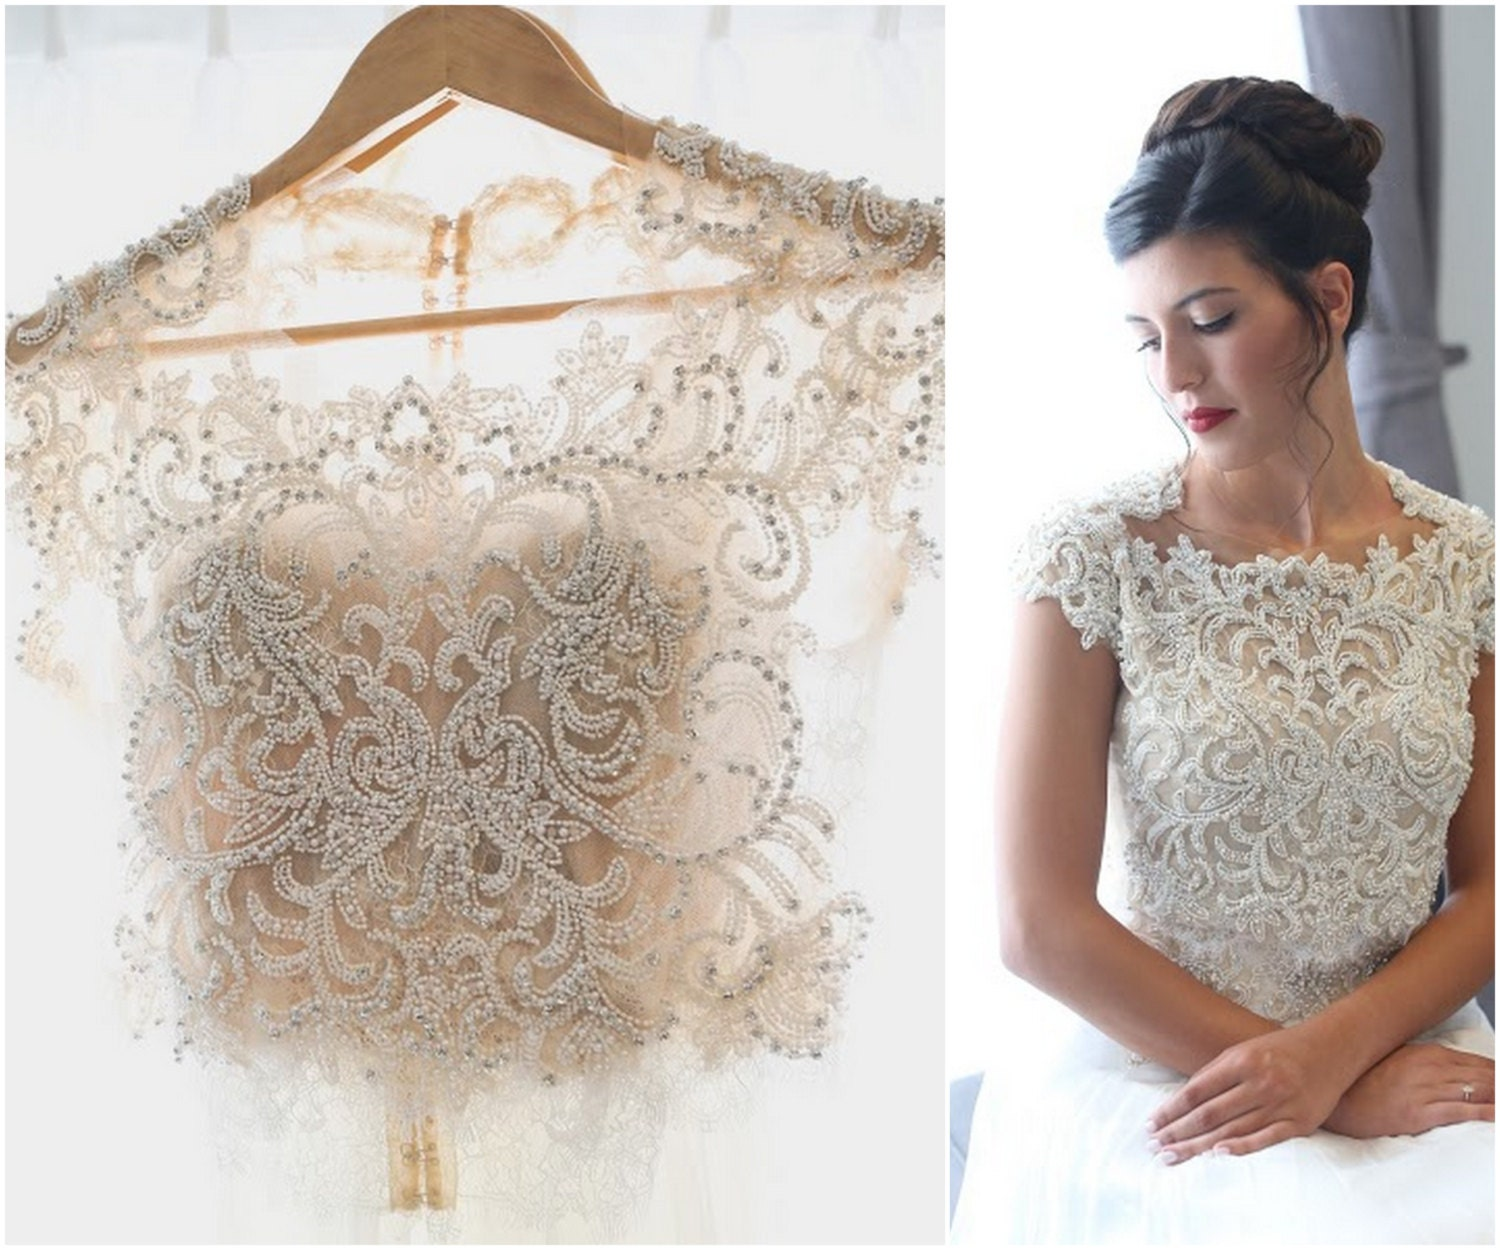 Lace Wedding Top Lace Bridal Top Wedding Crop Top Bridal